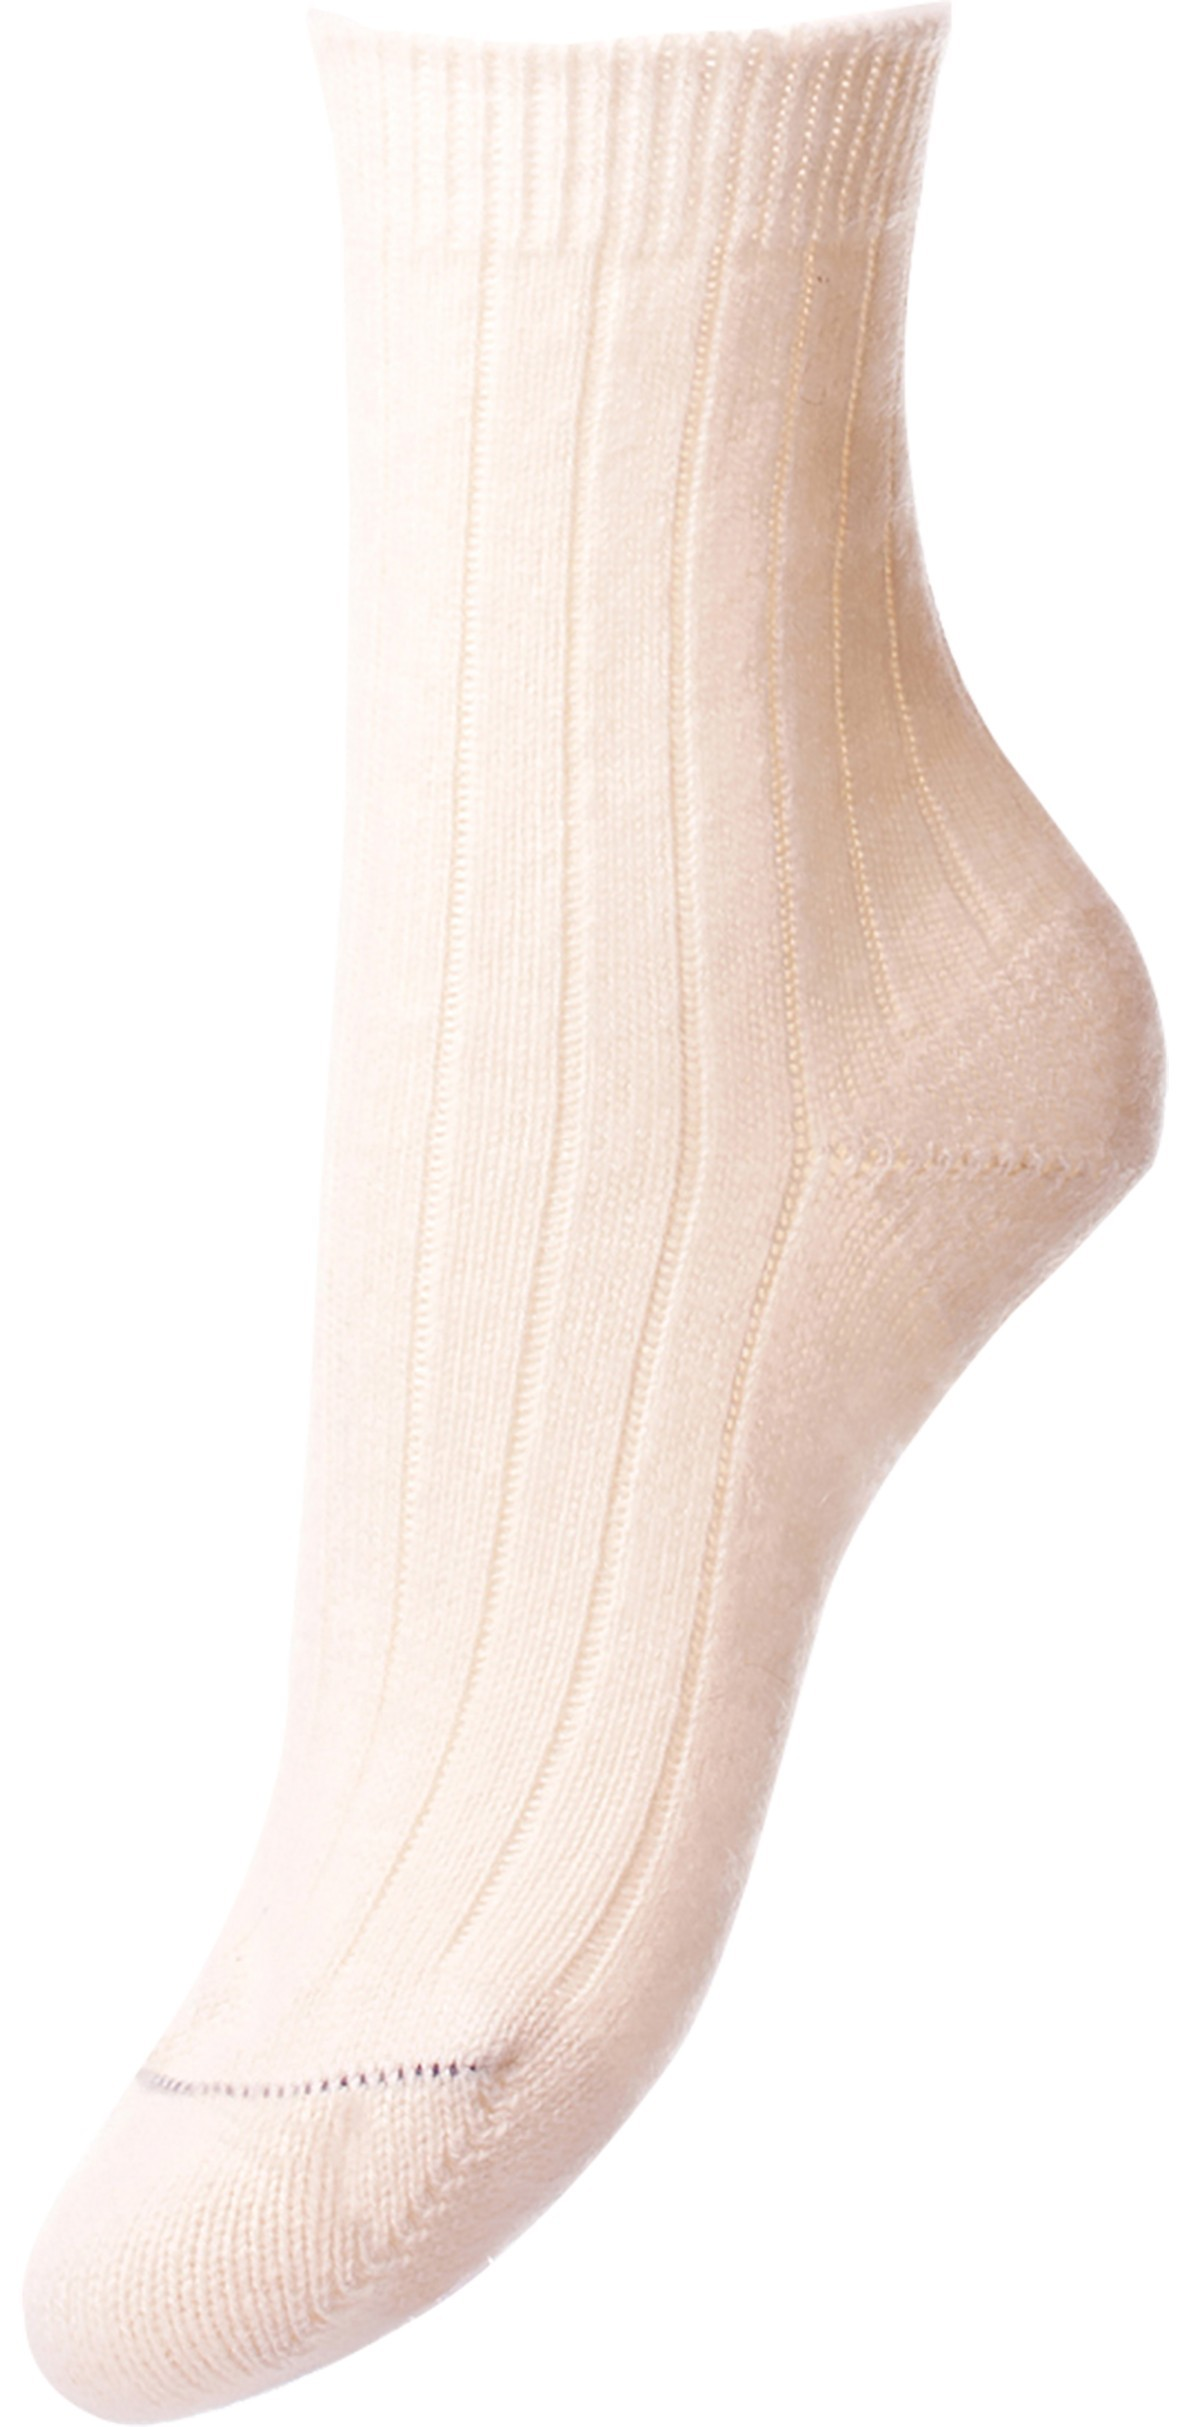 Pantherella Women's Tabitha Cashmere Ribbed Anklet Socks in Winter White